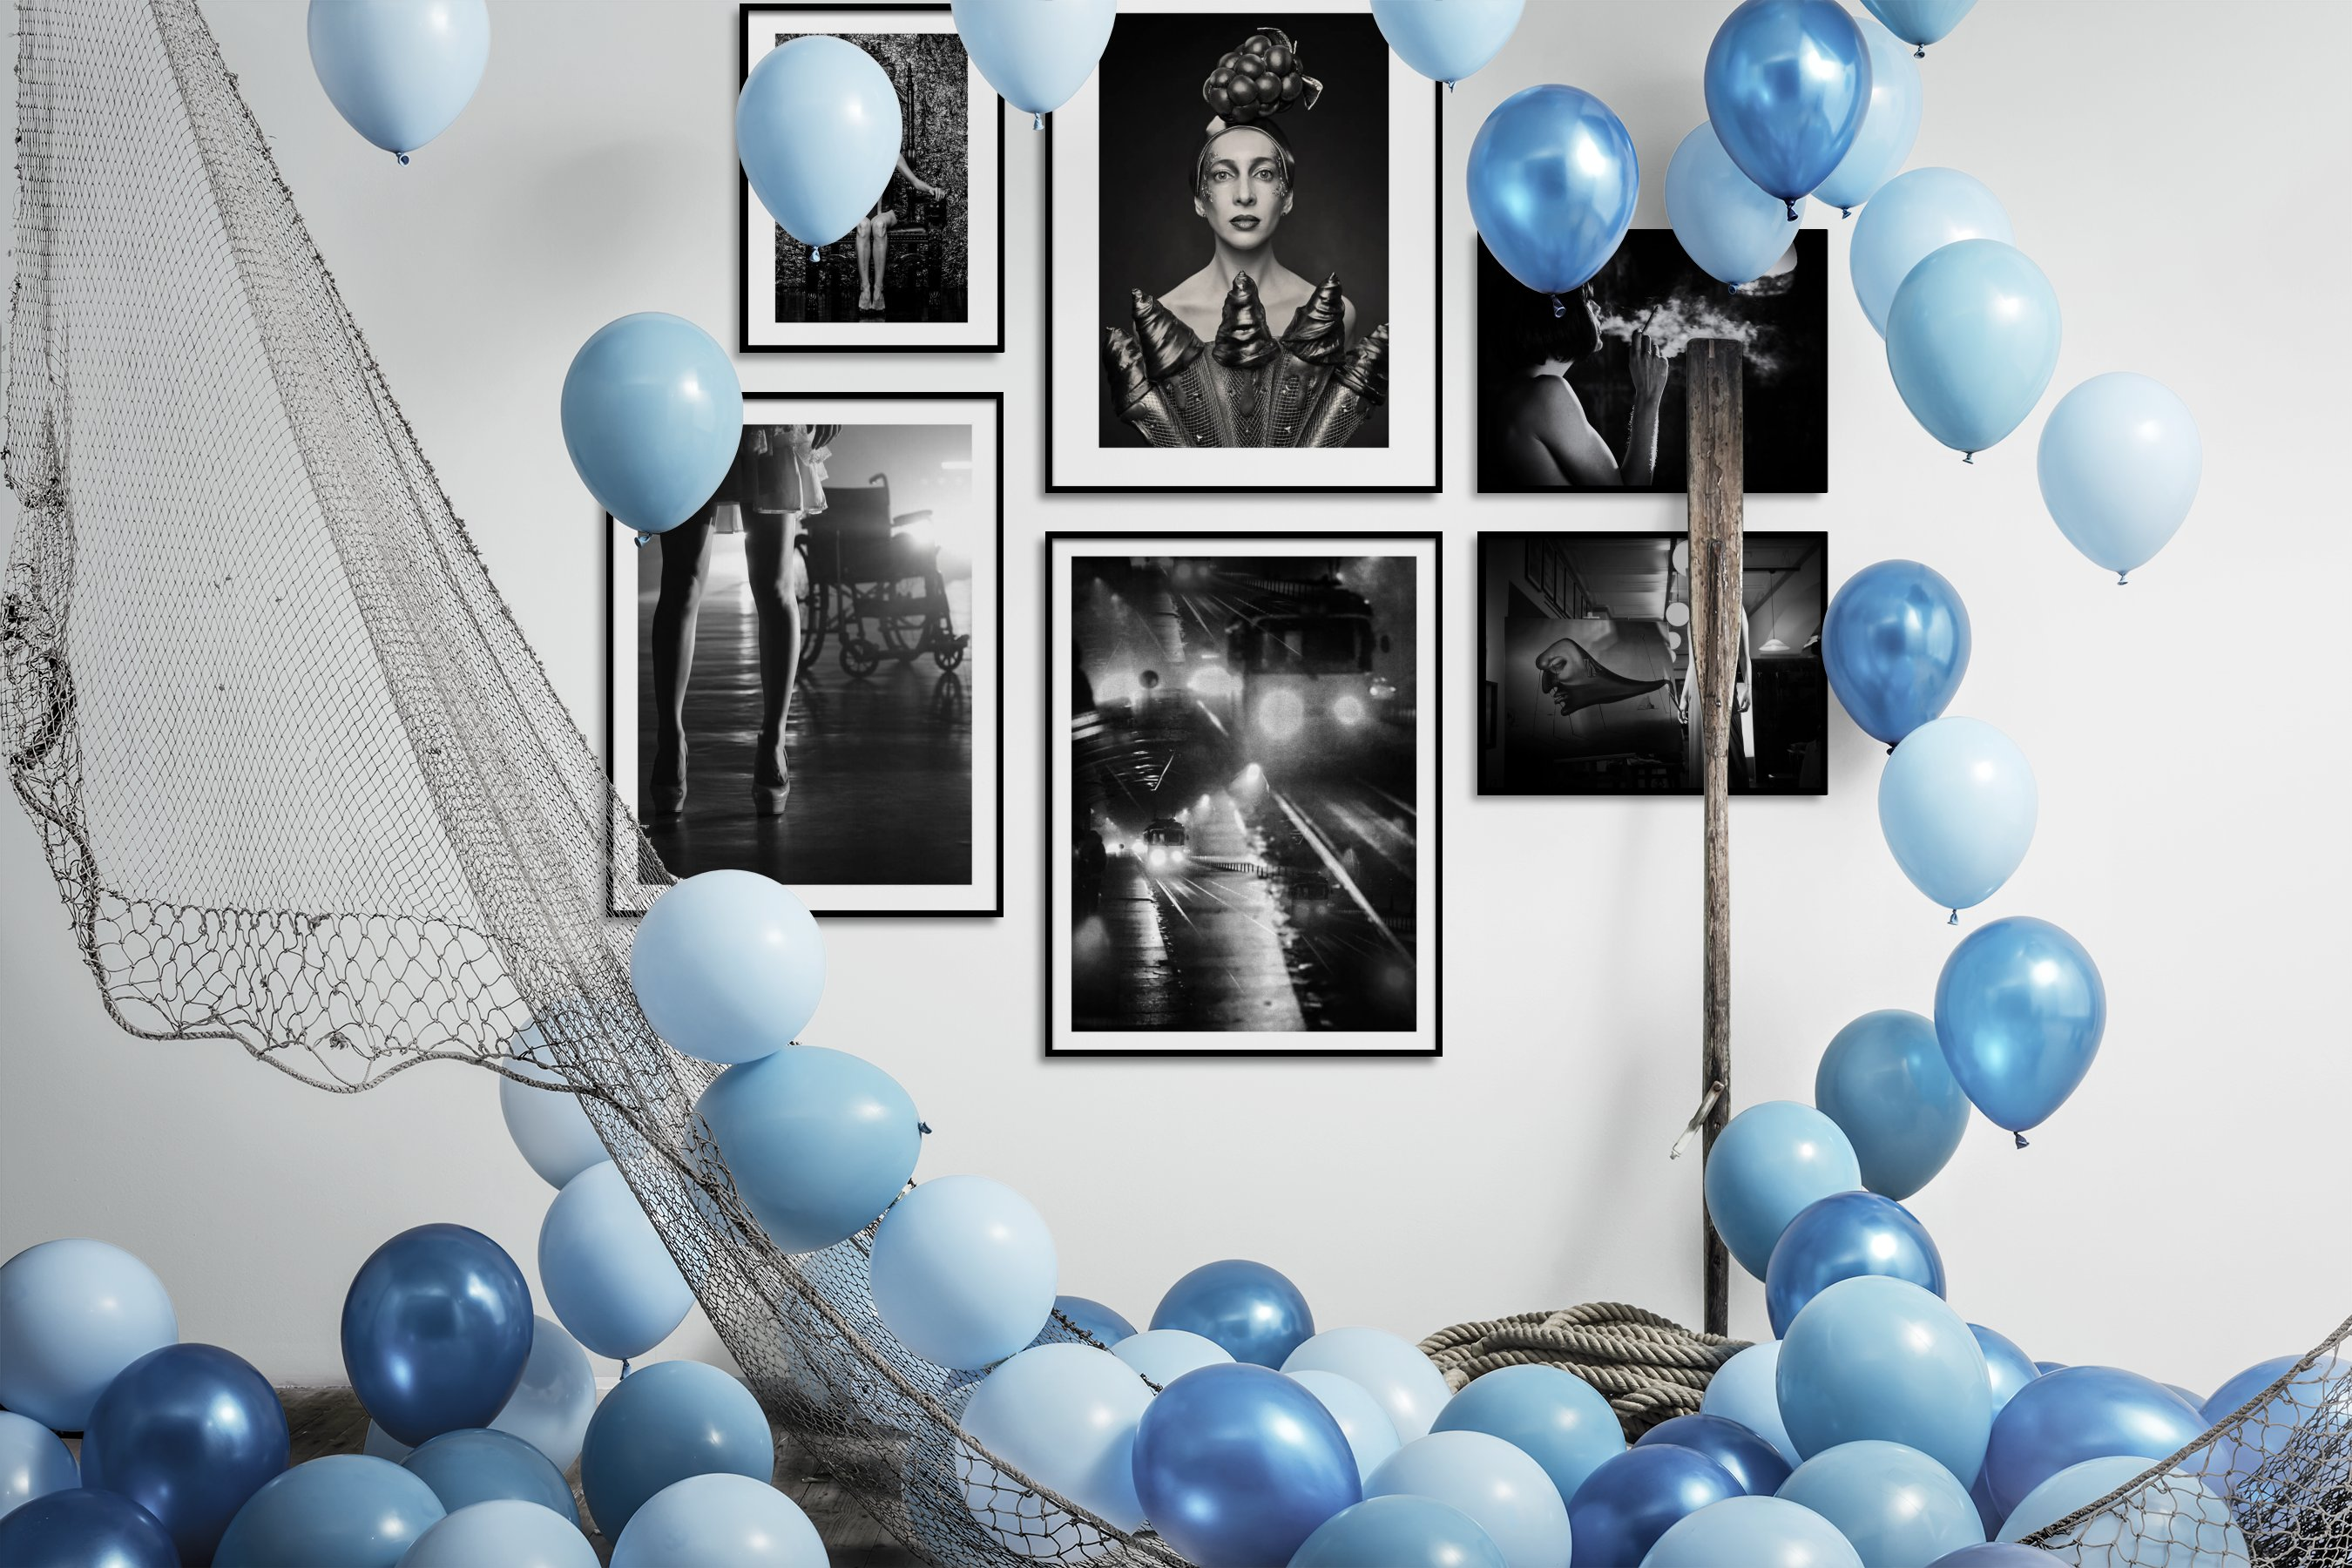 Gallery wall idea with six framed pictures arranged on a wall depicting Fashion & Beauty, Artsy, Black & White, and Vintage